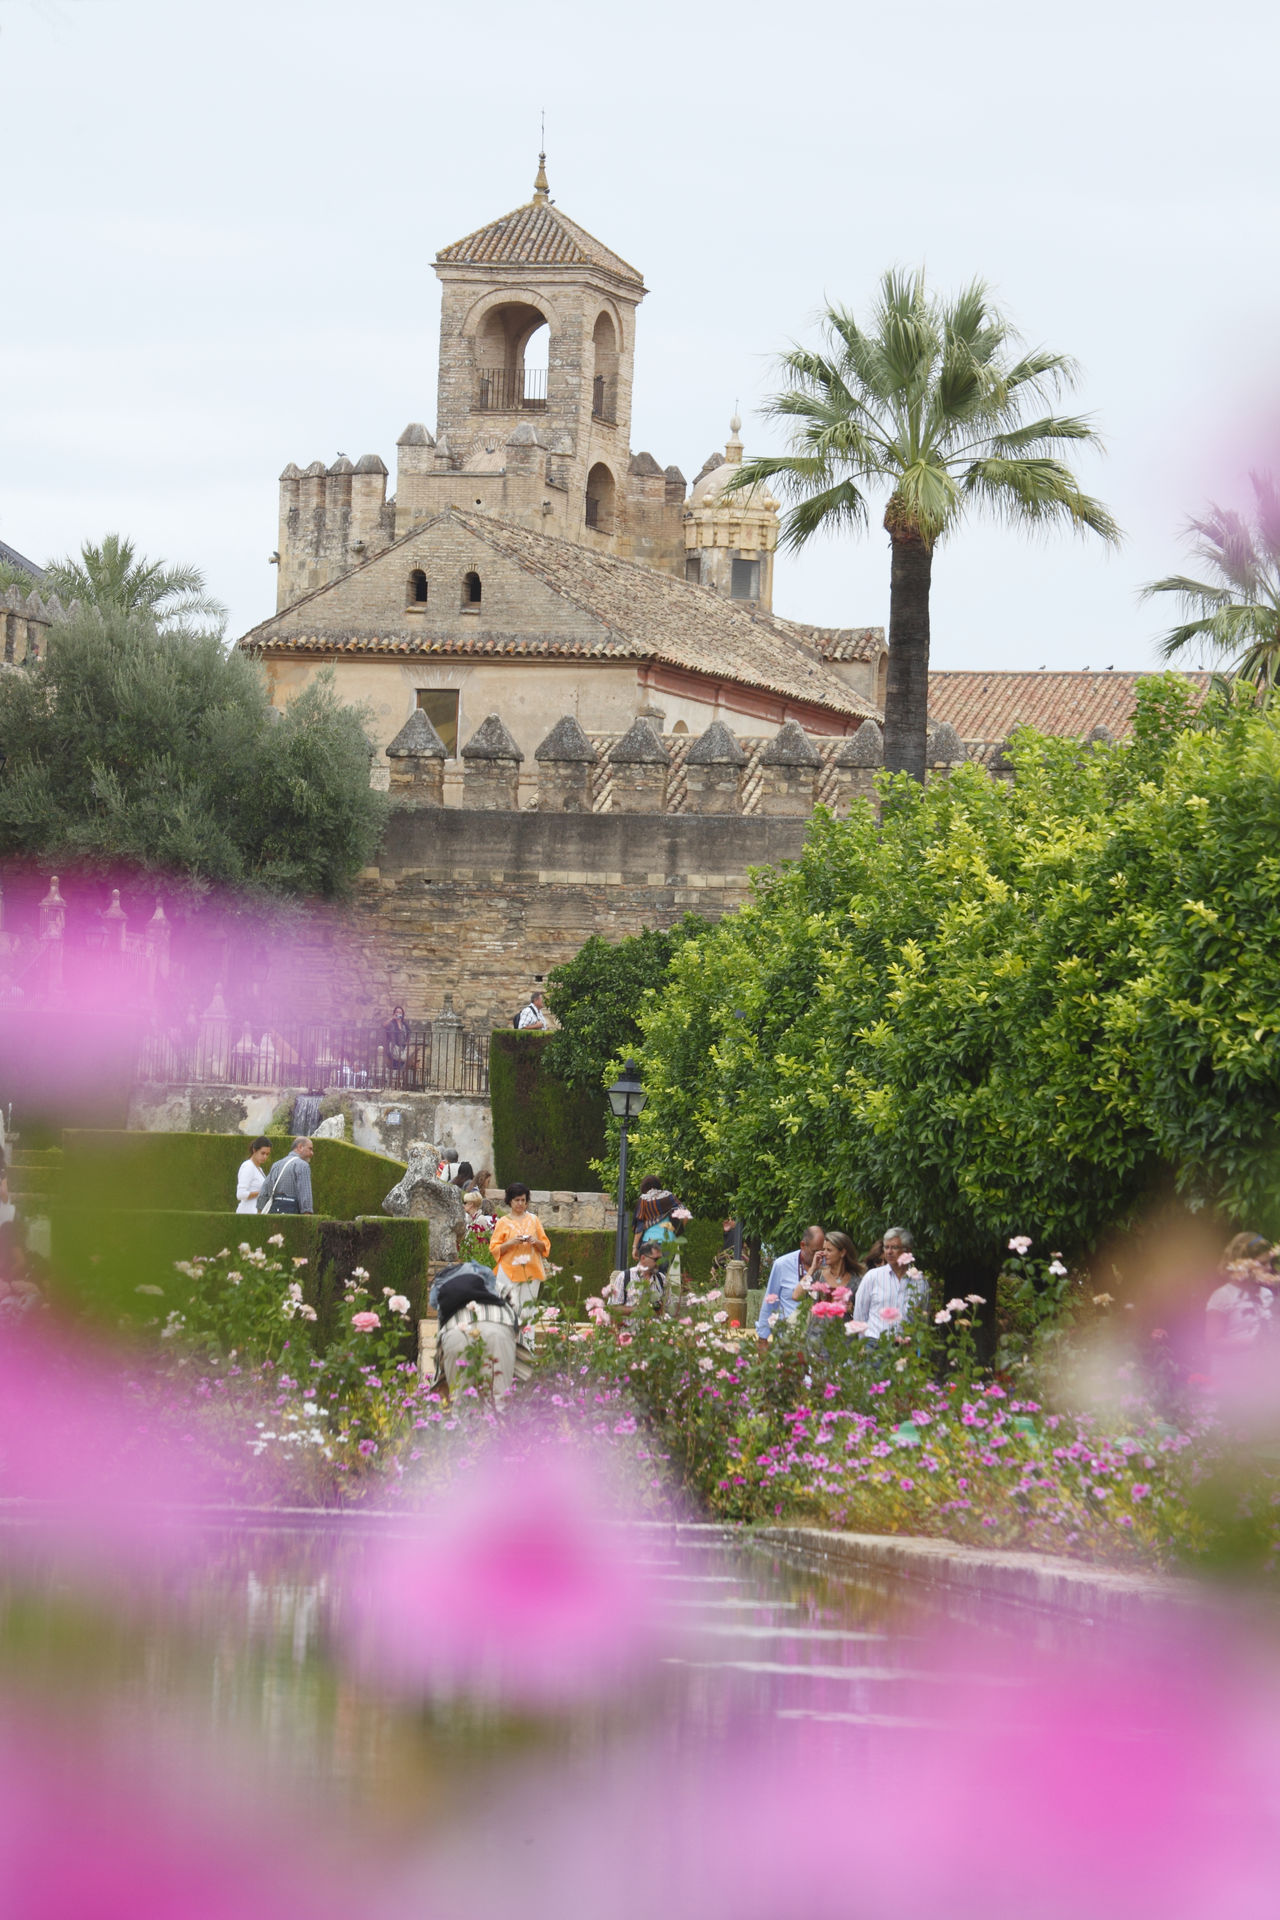 Garten of Alcazar, Cordoba, Andalusien, Spanien Alcazar Andalucía Andalusia Architecture Building Exterior Built Structure City Córdoba Day De Flowers Growth History Nature No People Outdoors Sky SPAIN Travel Destinations Tree Water